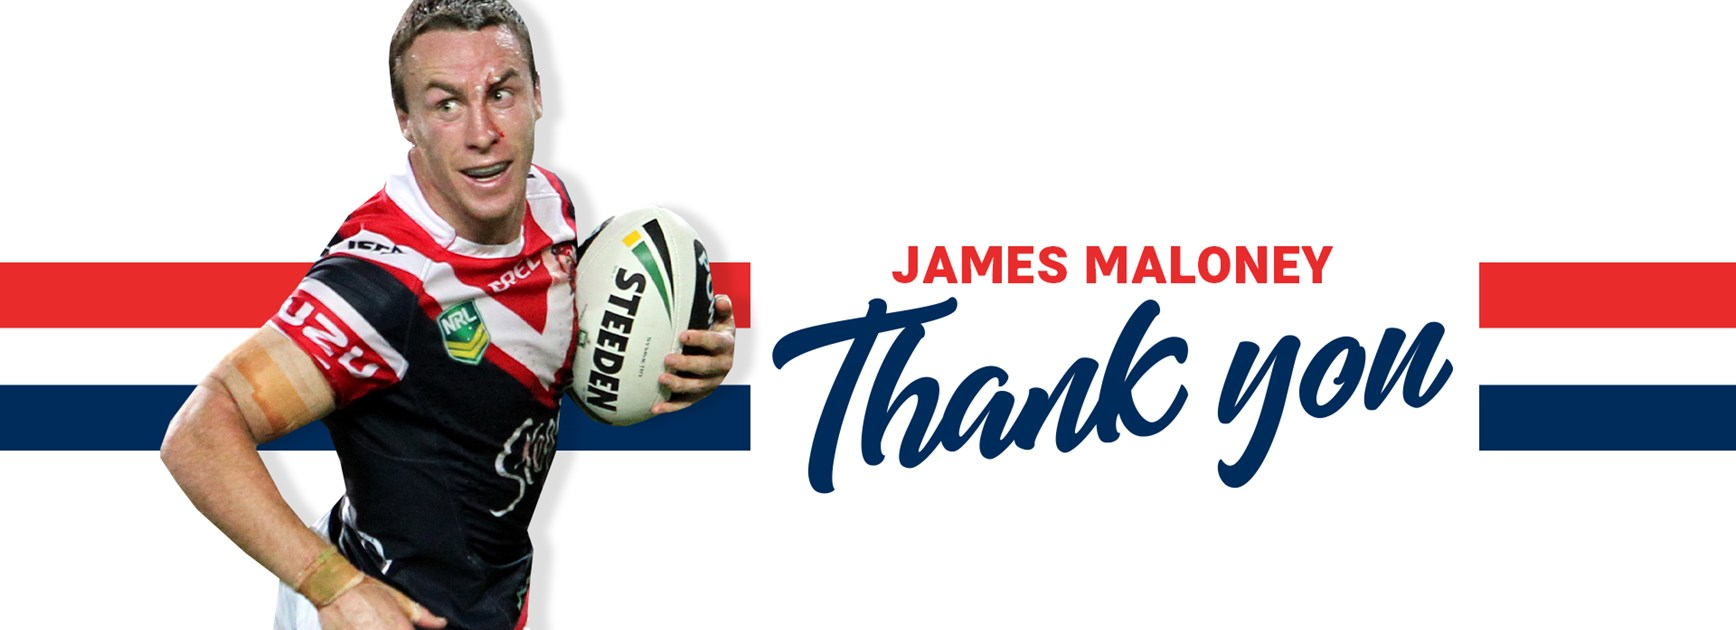 A Farewell To James Maloney